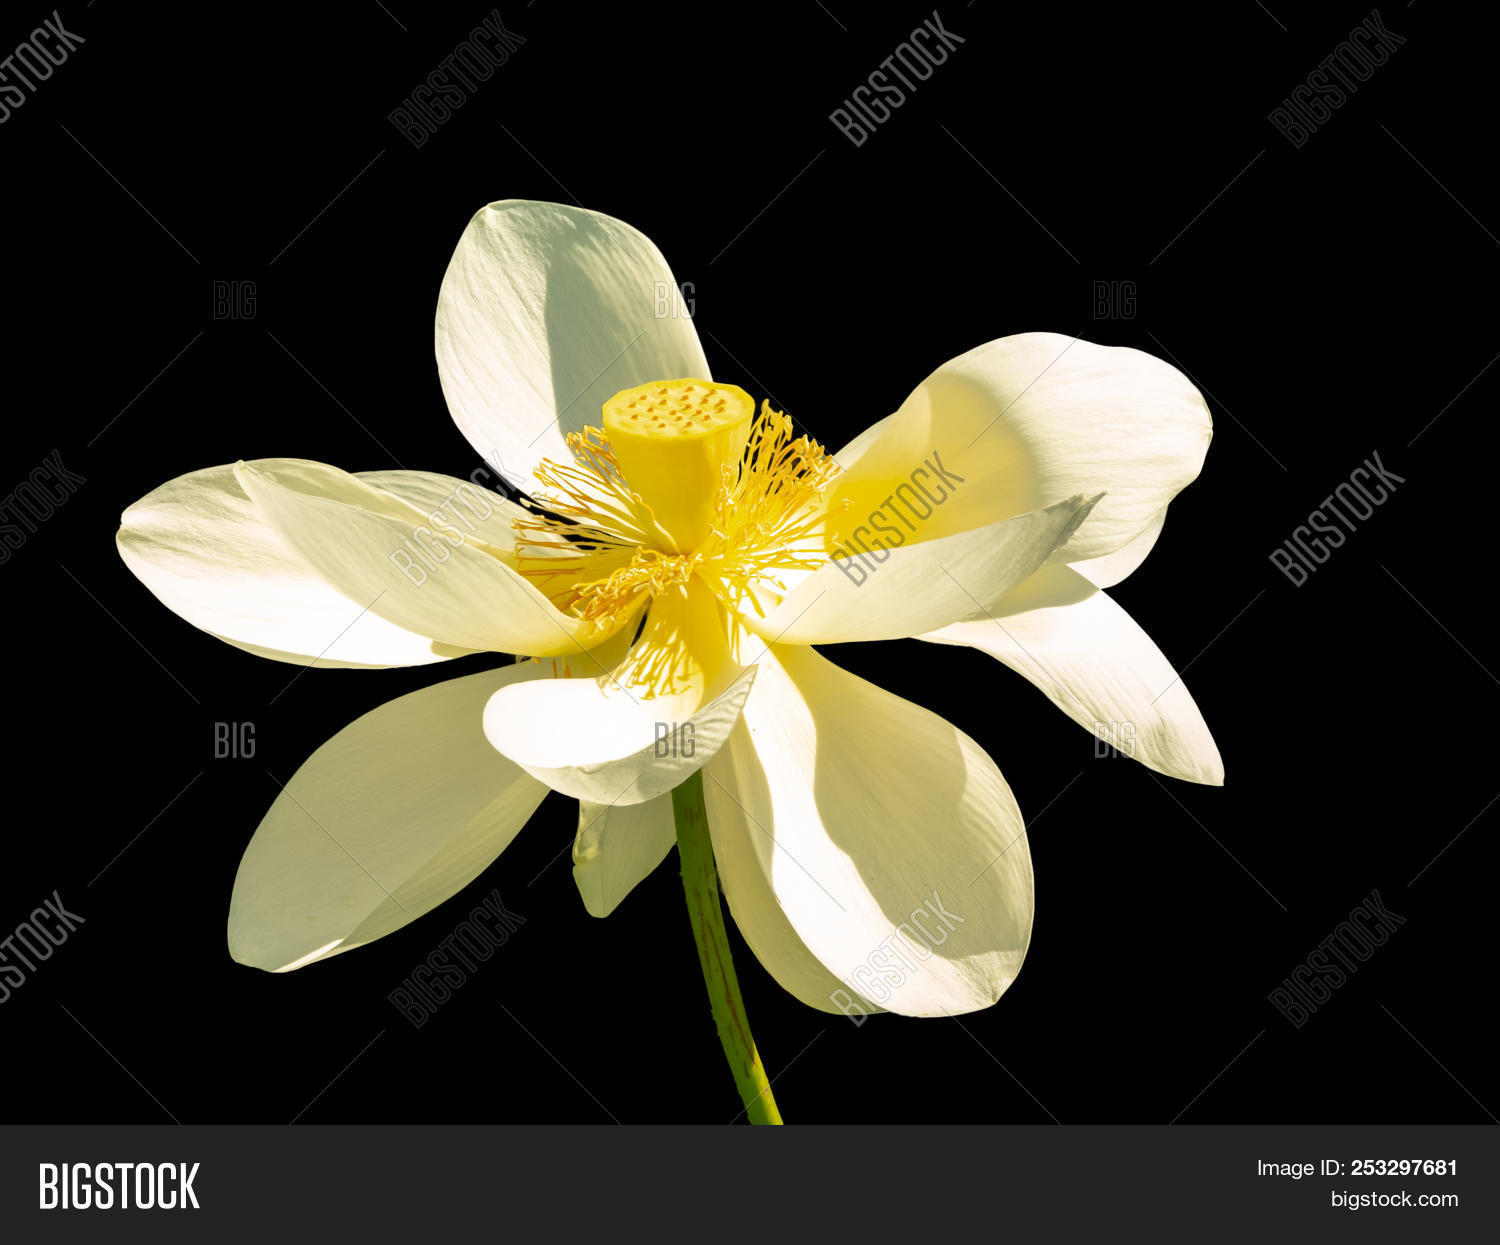 White open lotus image photo free trial bigstock white open lotus flower with yellow pestle is isolated on a black background izmirmasajfo